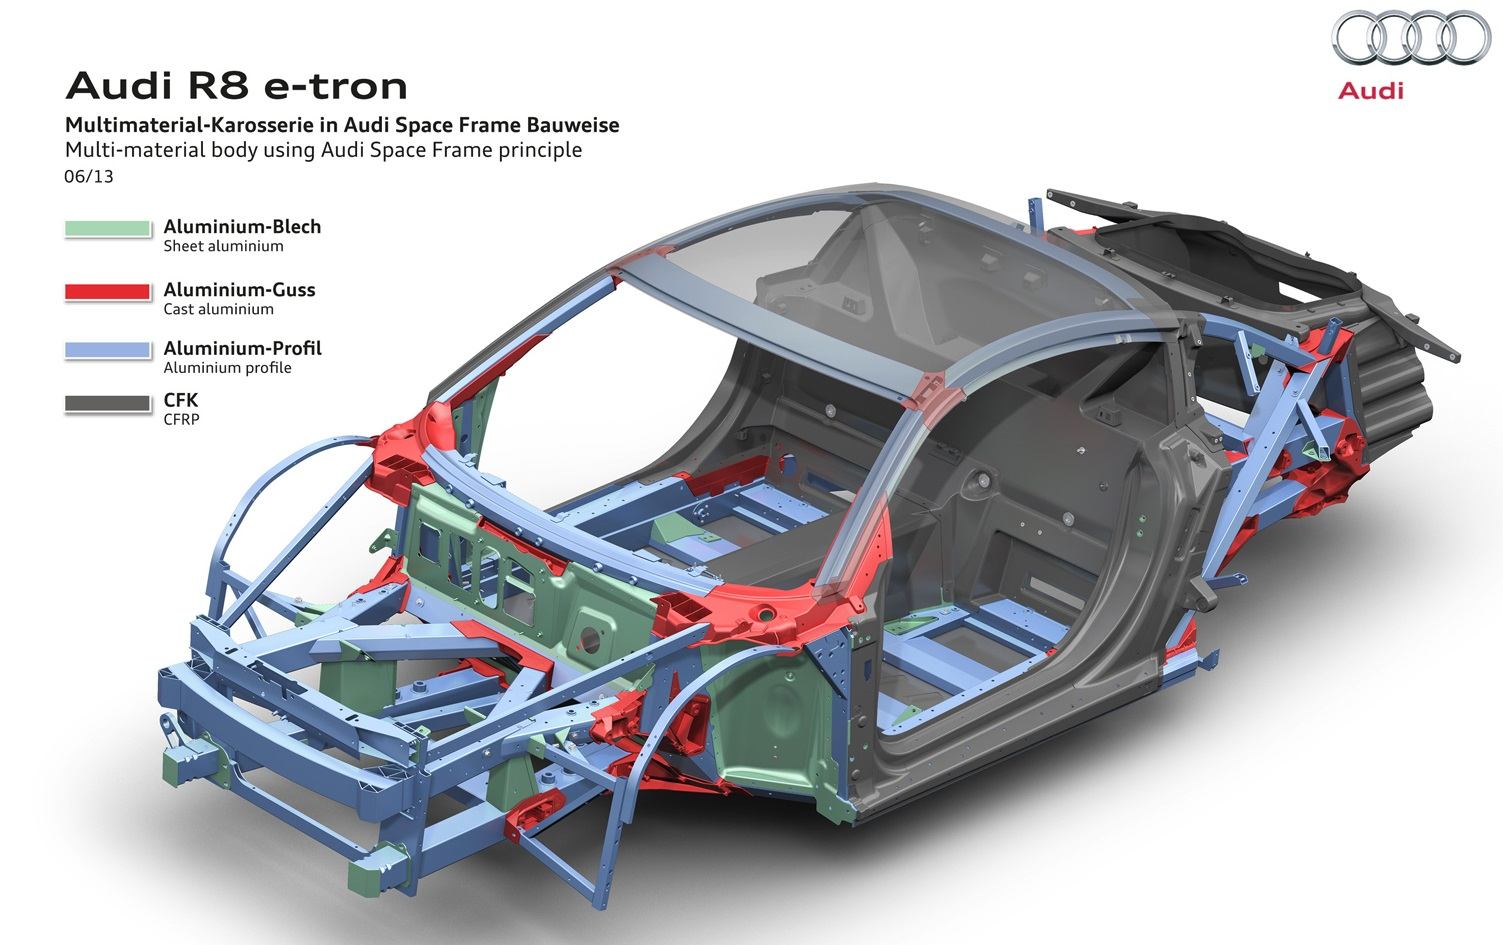 2013 Audi R8 e-tron HV Battery and BIW